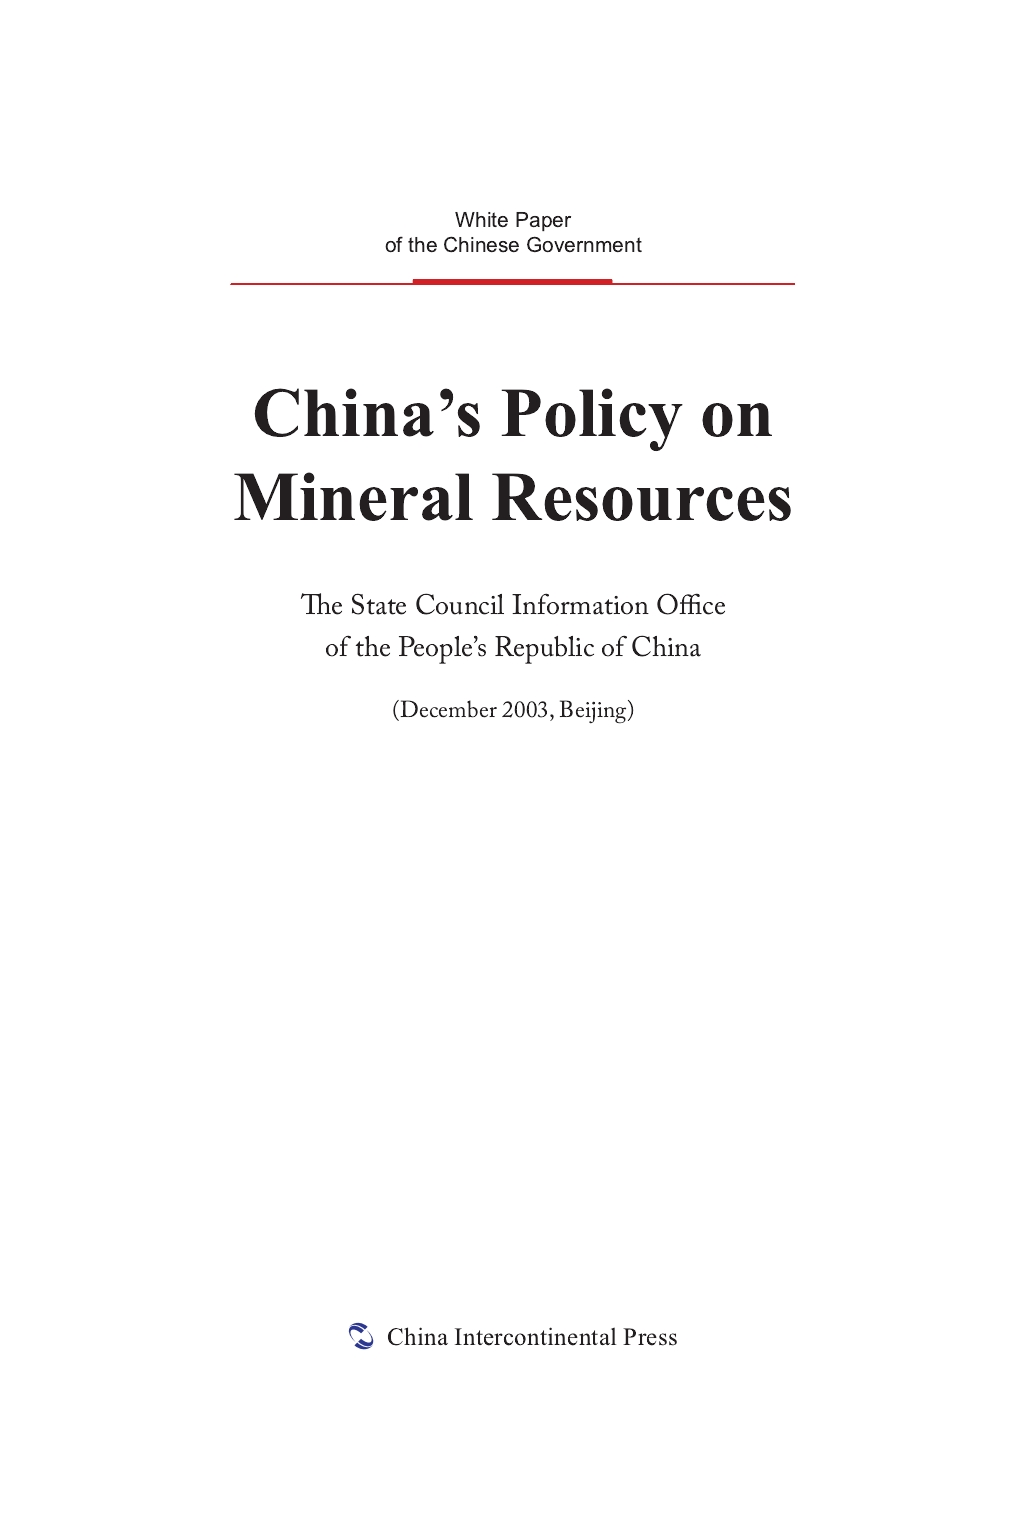 China's Policy on Mineral Resources